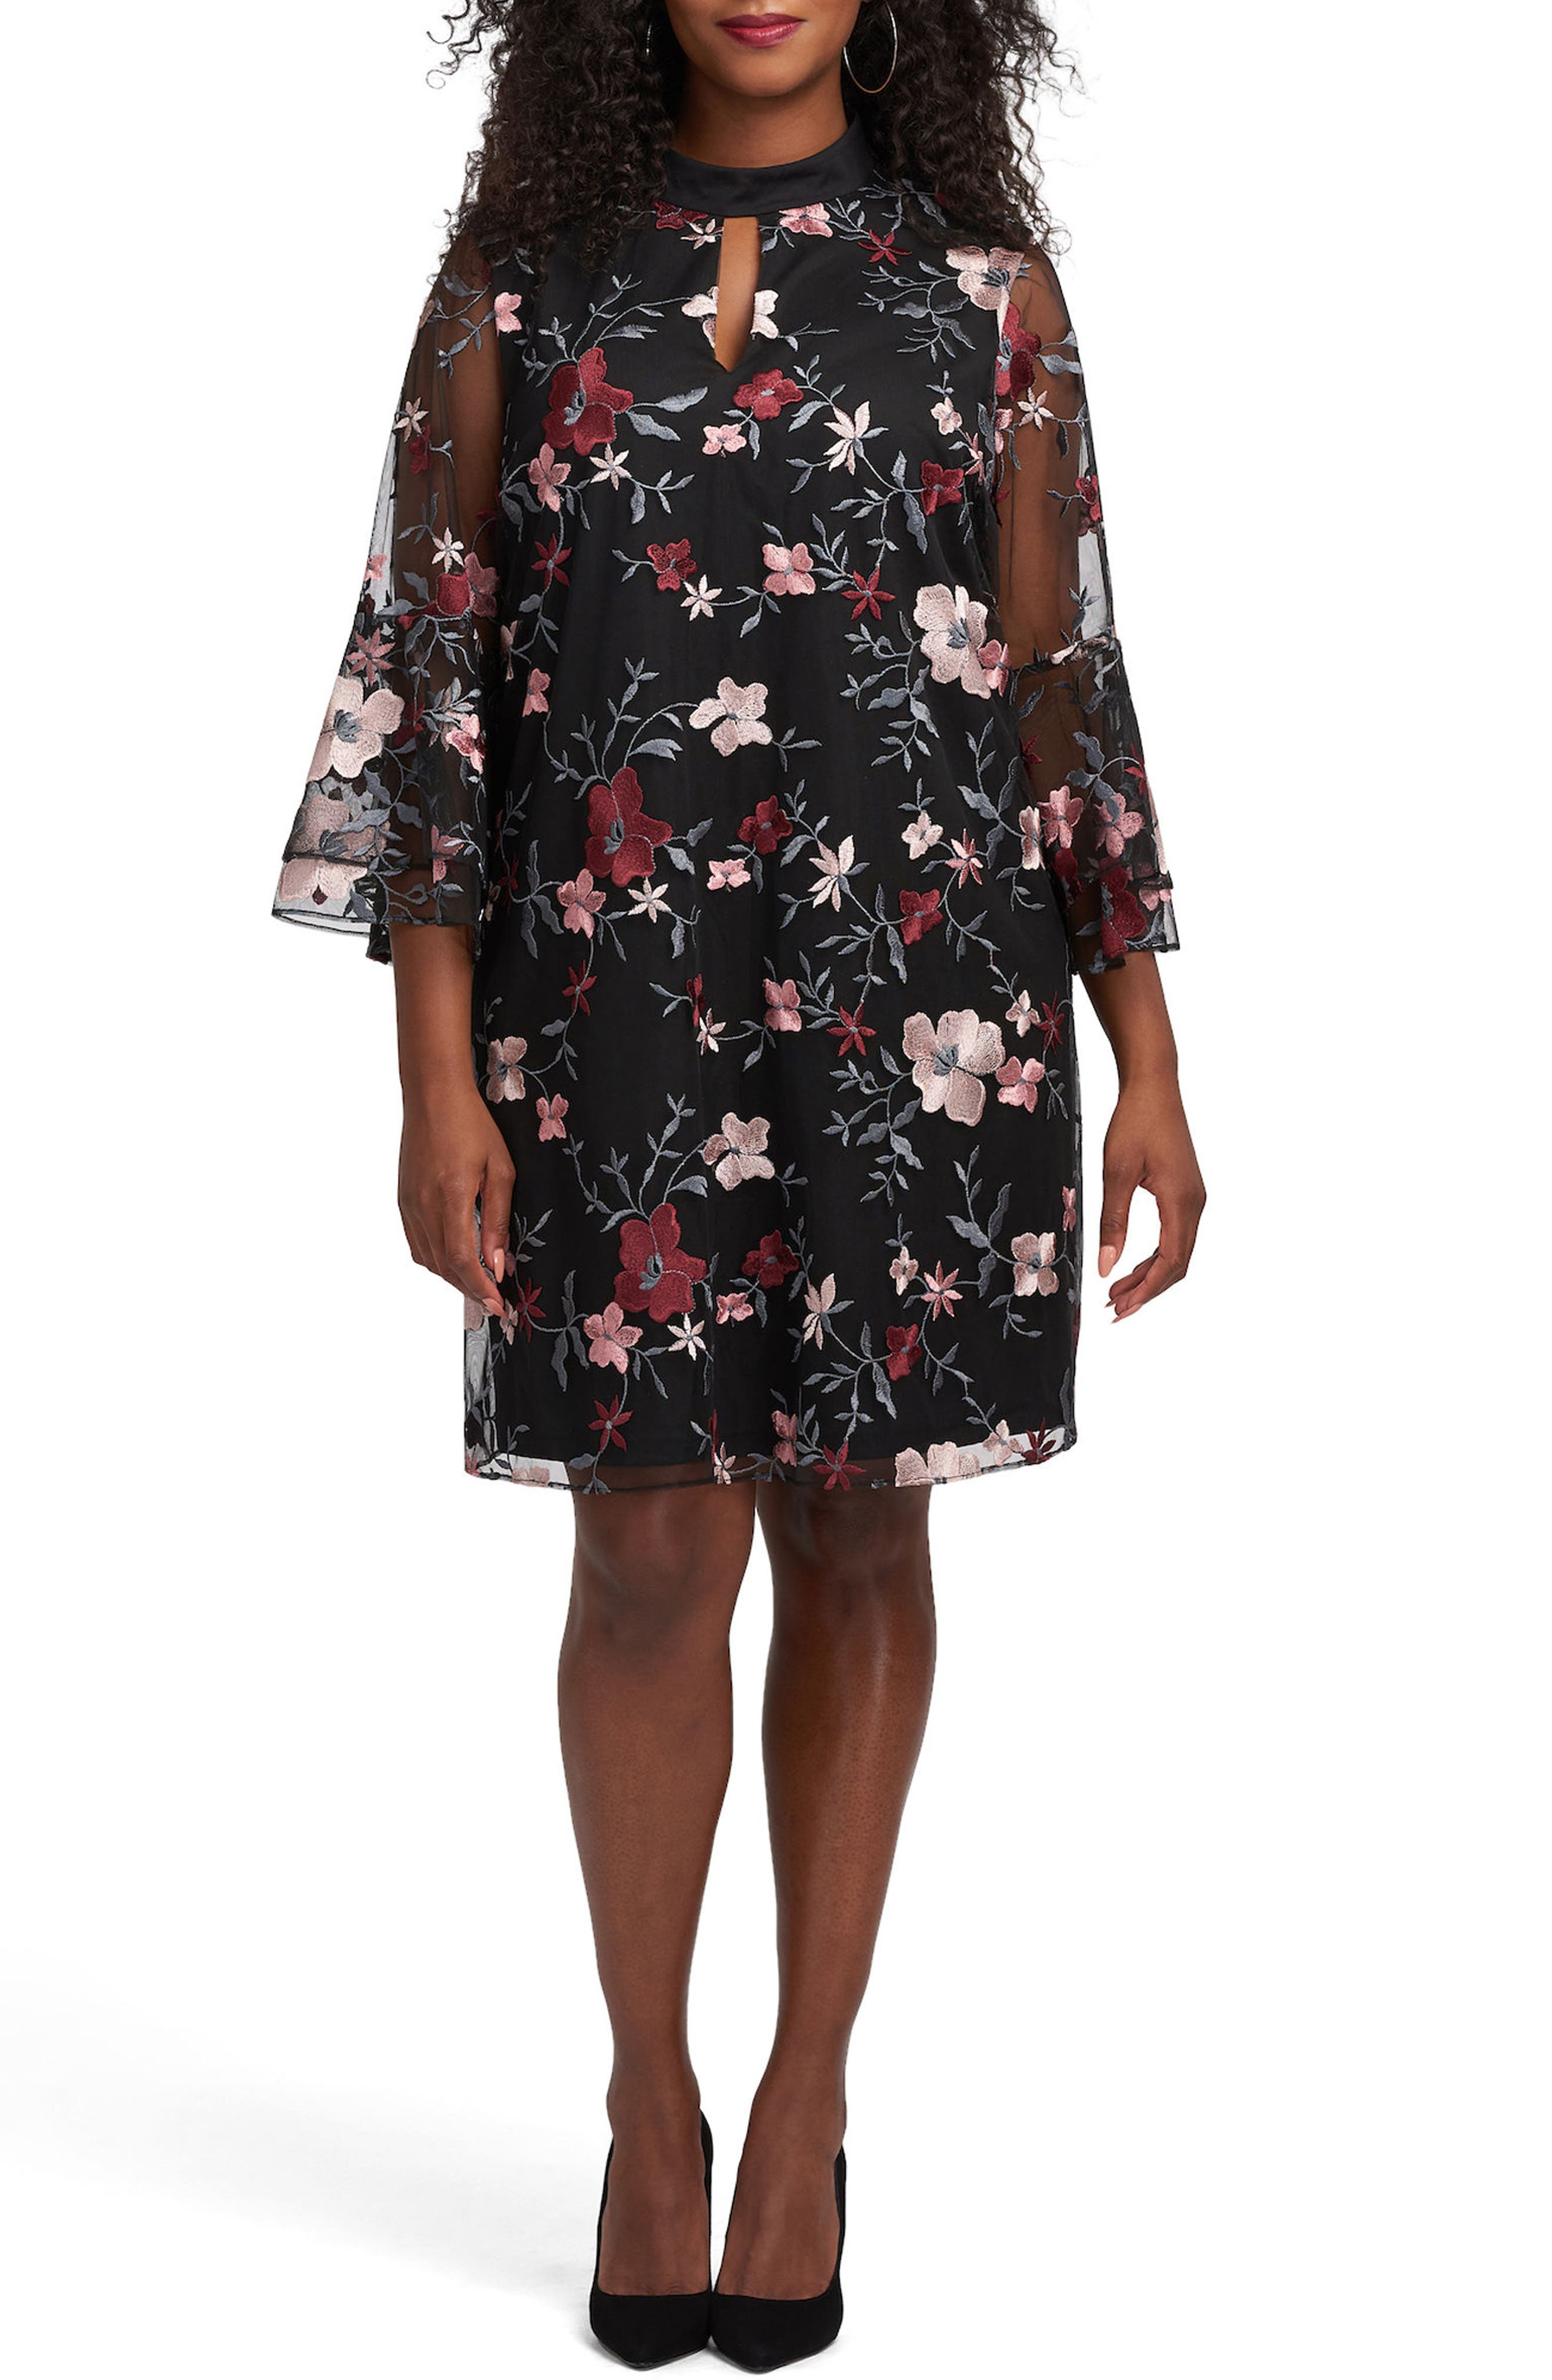 Alternate Image 1 Selected - ECI Floral Embroidered Mesh A-Line Dress (Plus Size)